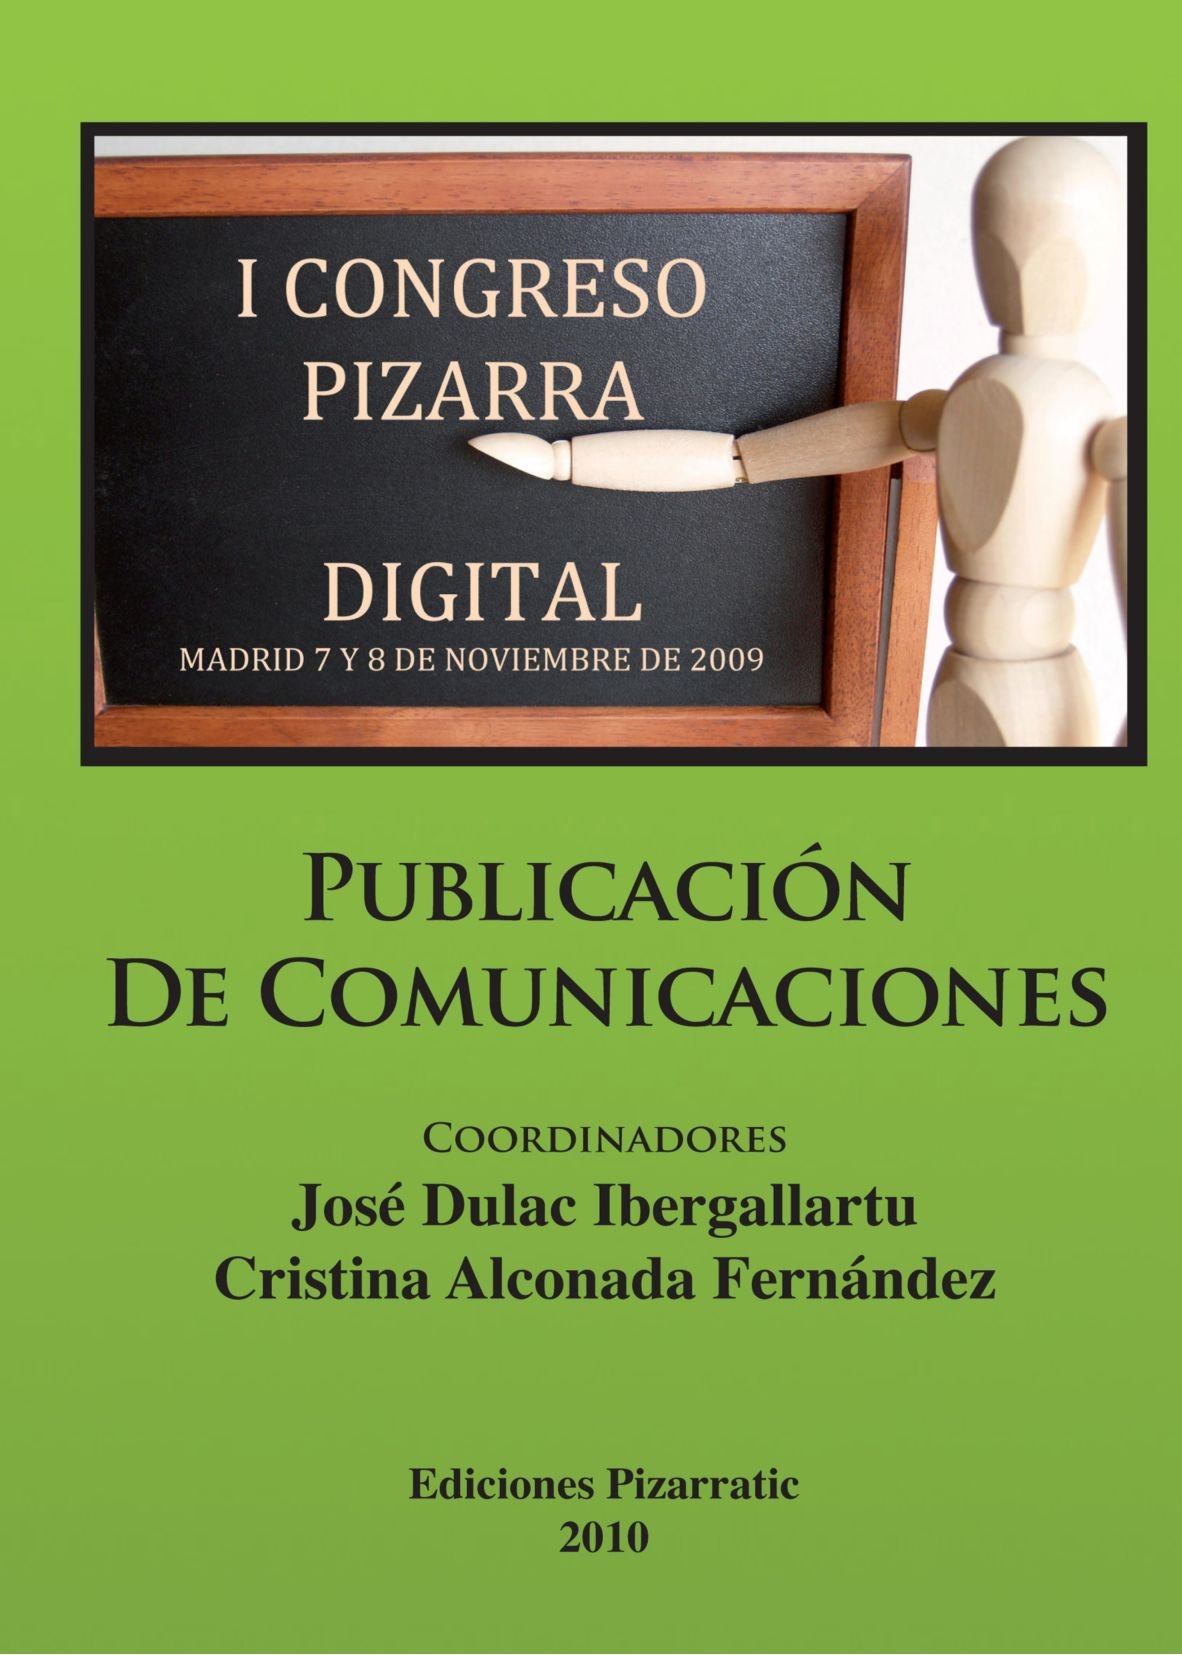 I Congreso Pizarra Digital (Spanish Edition): José Dulac ...